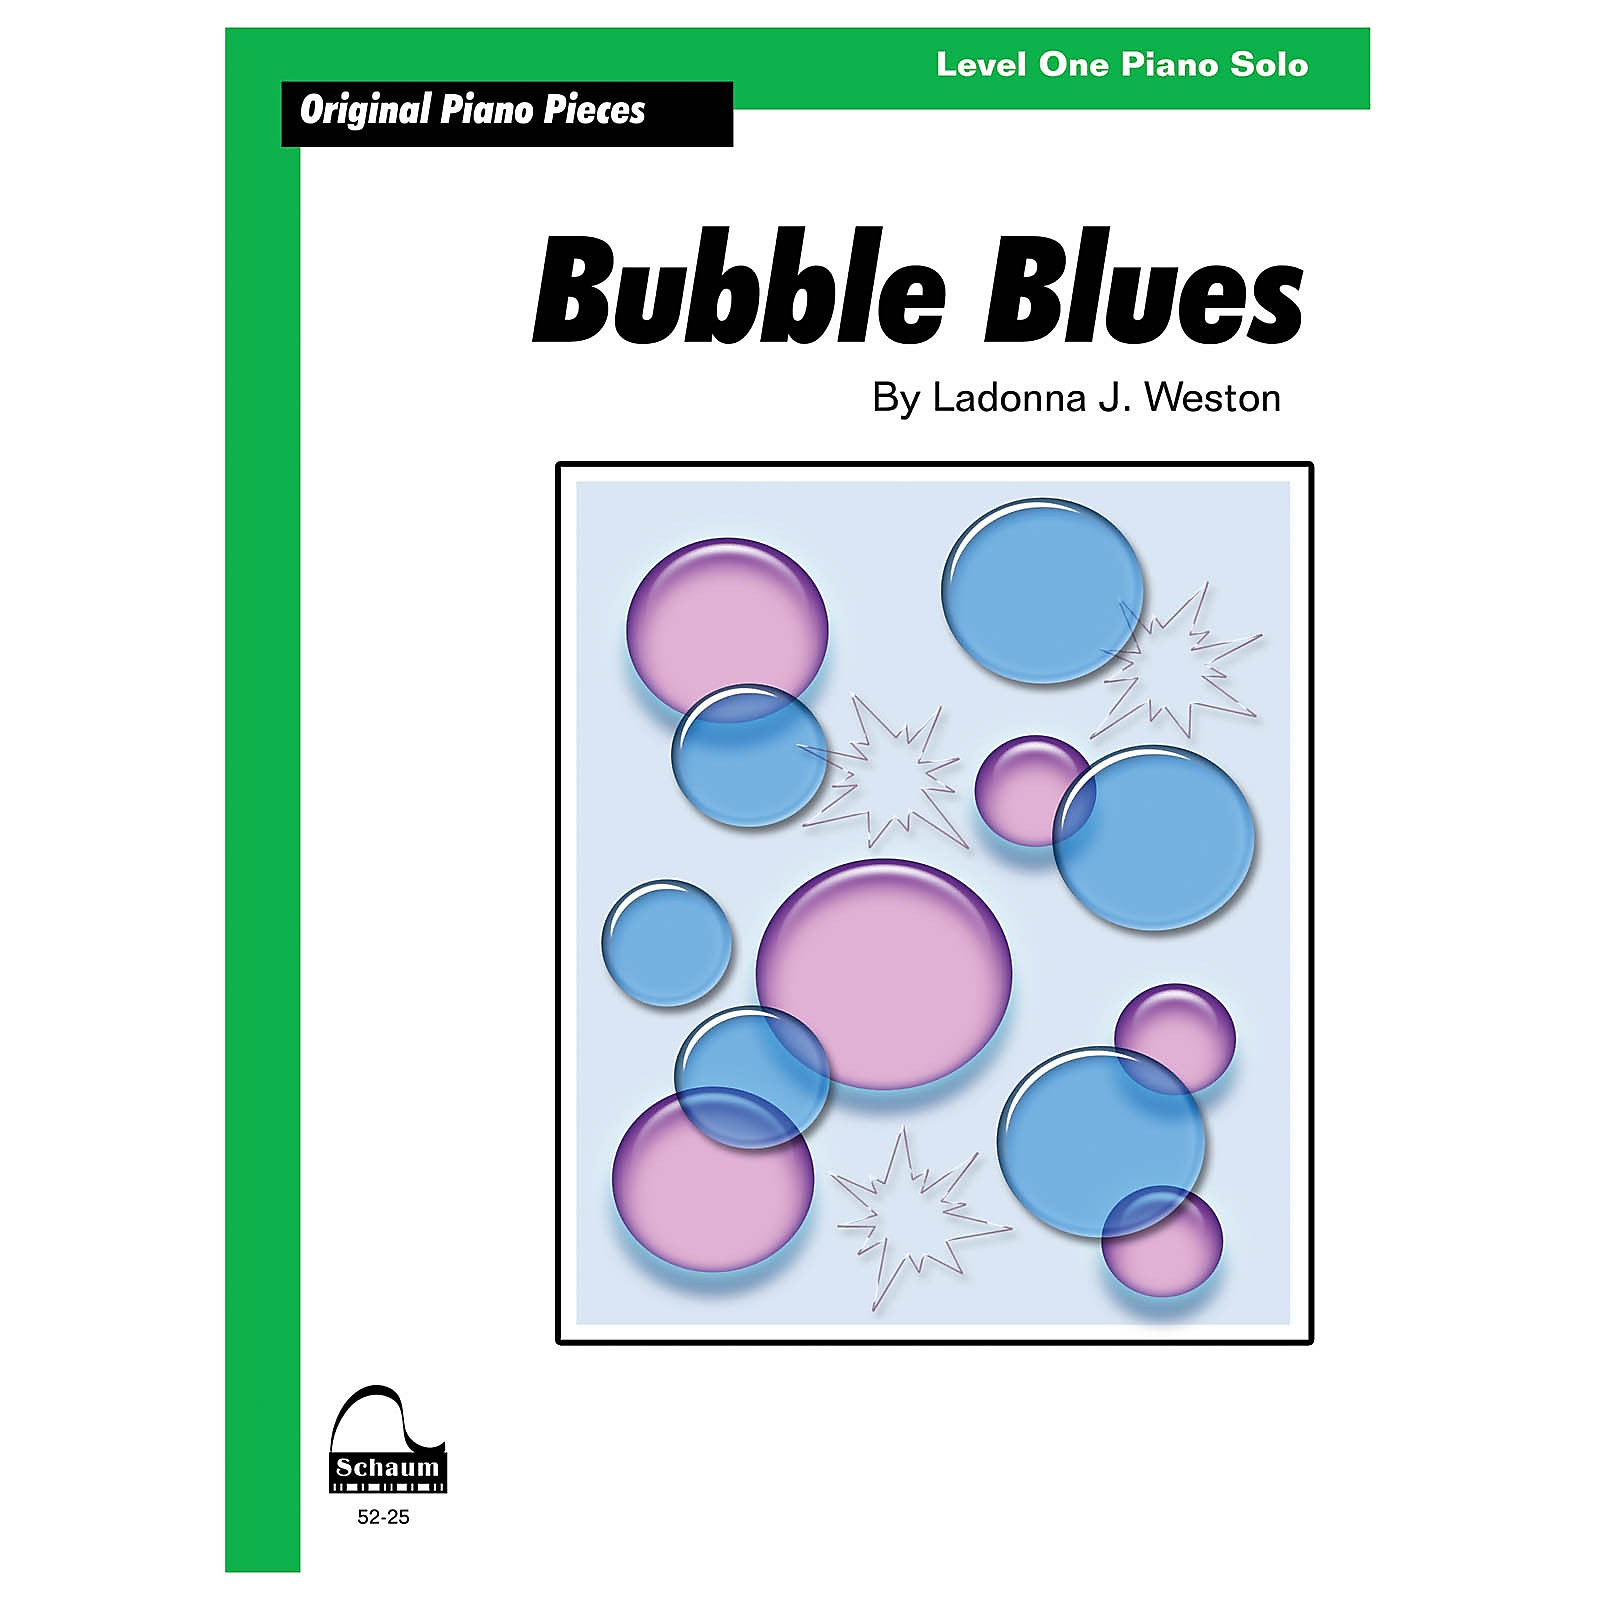 SCHAUM Bubble Blues Educational Piano Book by Ladonna J. Weston (Level 1)